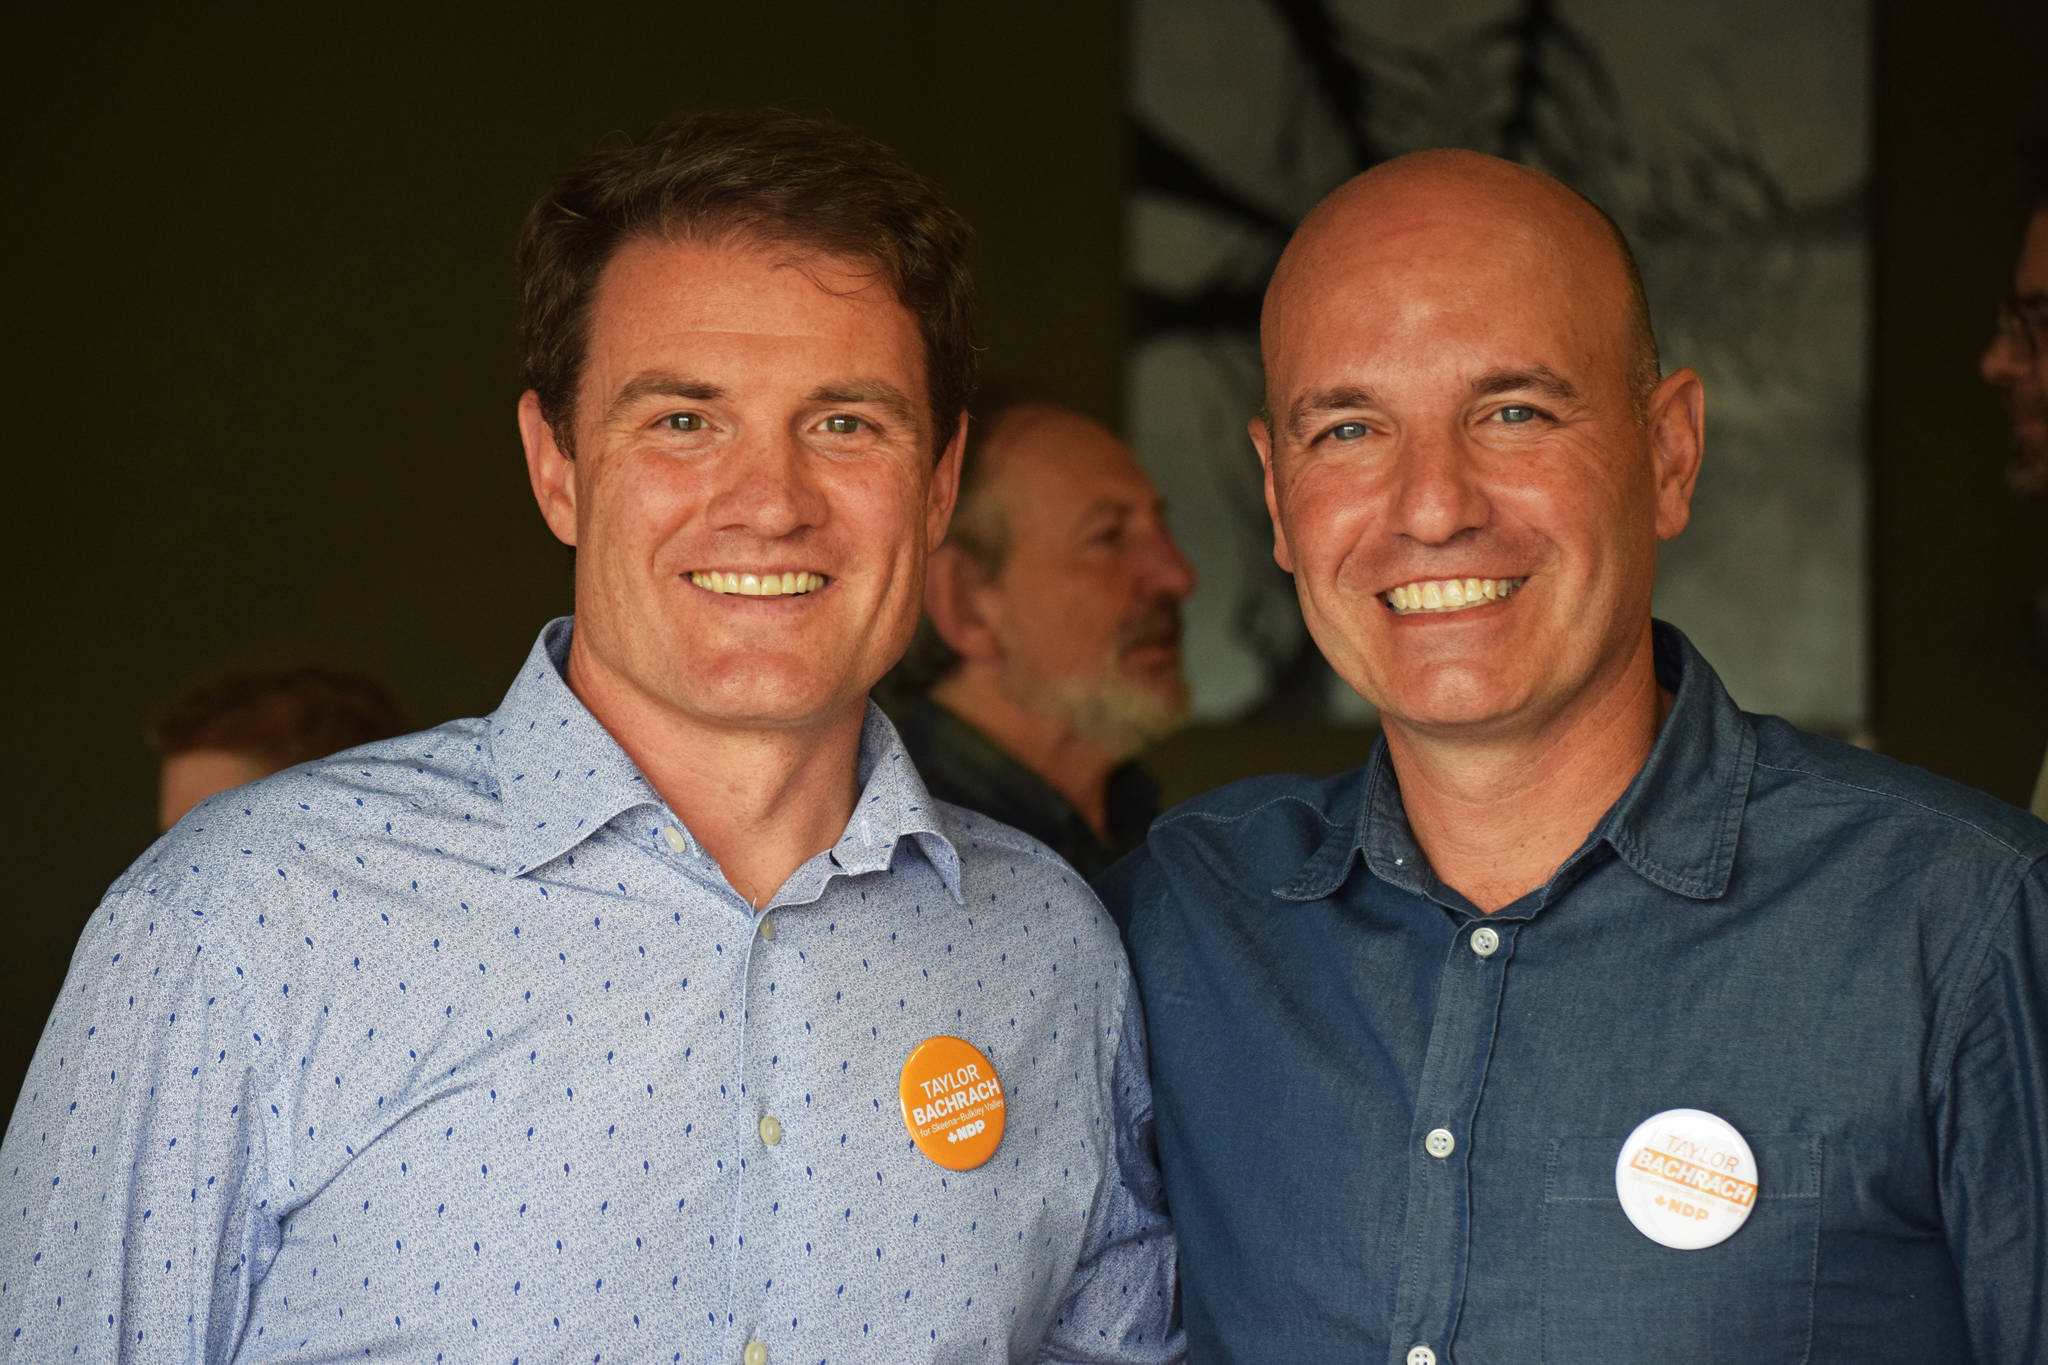 Taylor Bachrach (left) and Nathan Cullen (right) pictured at Bachrach's Smithers campaign office opening on Sept. 5. Bachrach is taking over Cullen's place as the NDP candidate for Skeena-Bulkley Valley. (Trevor Hewitt photo)